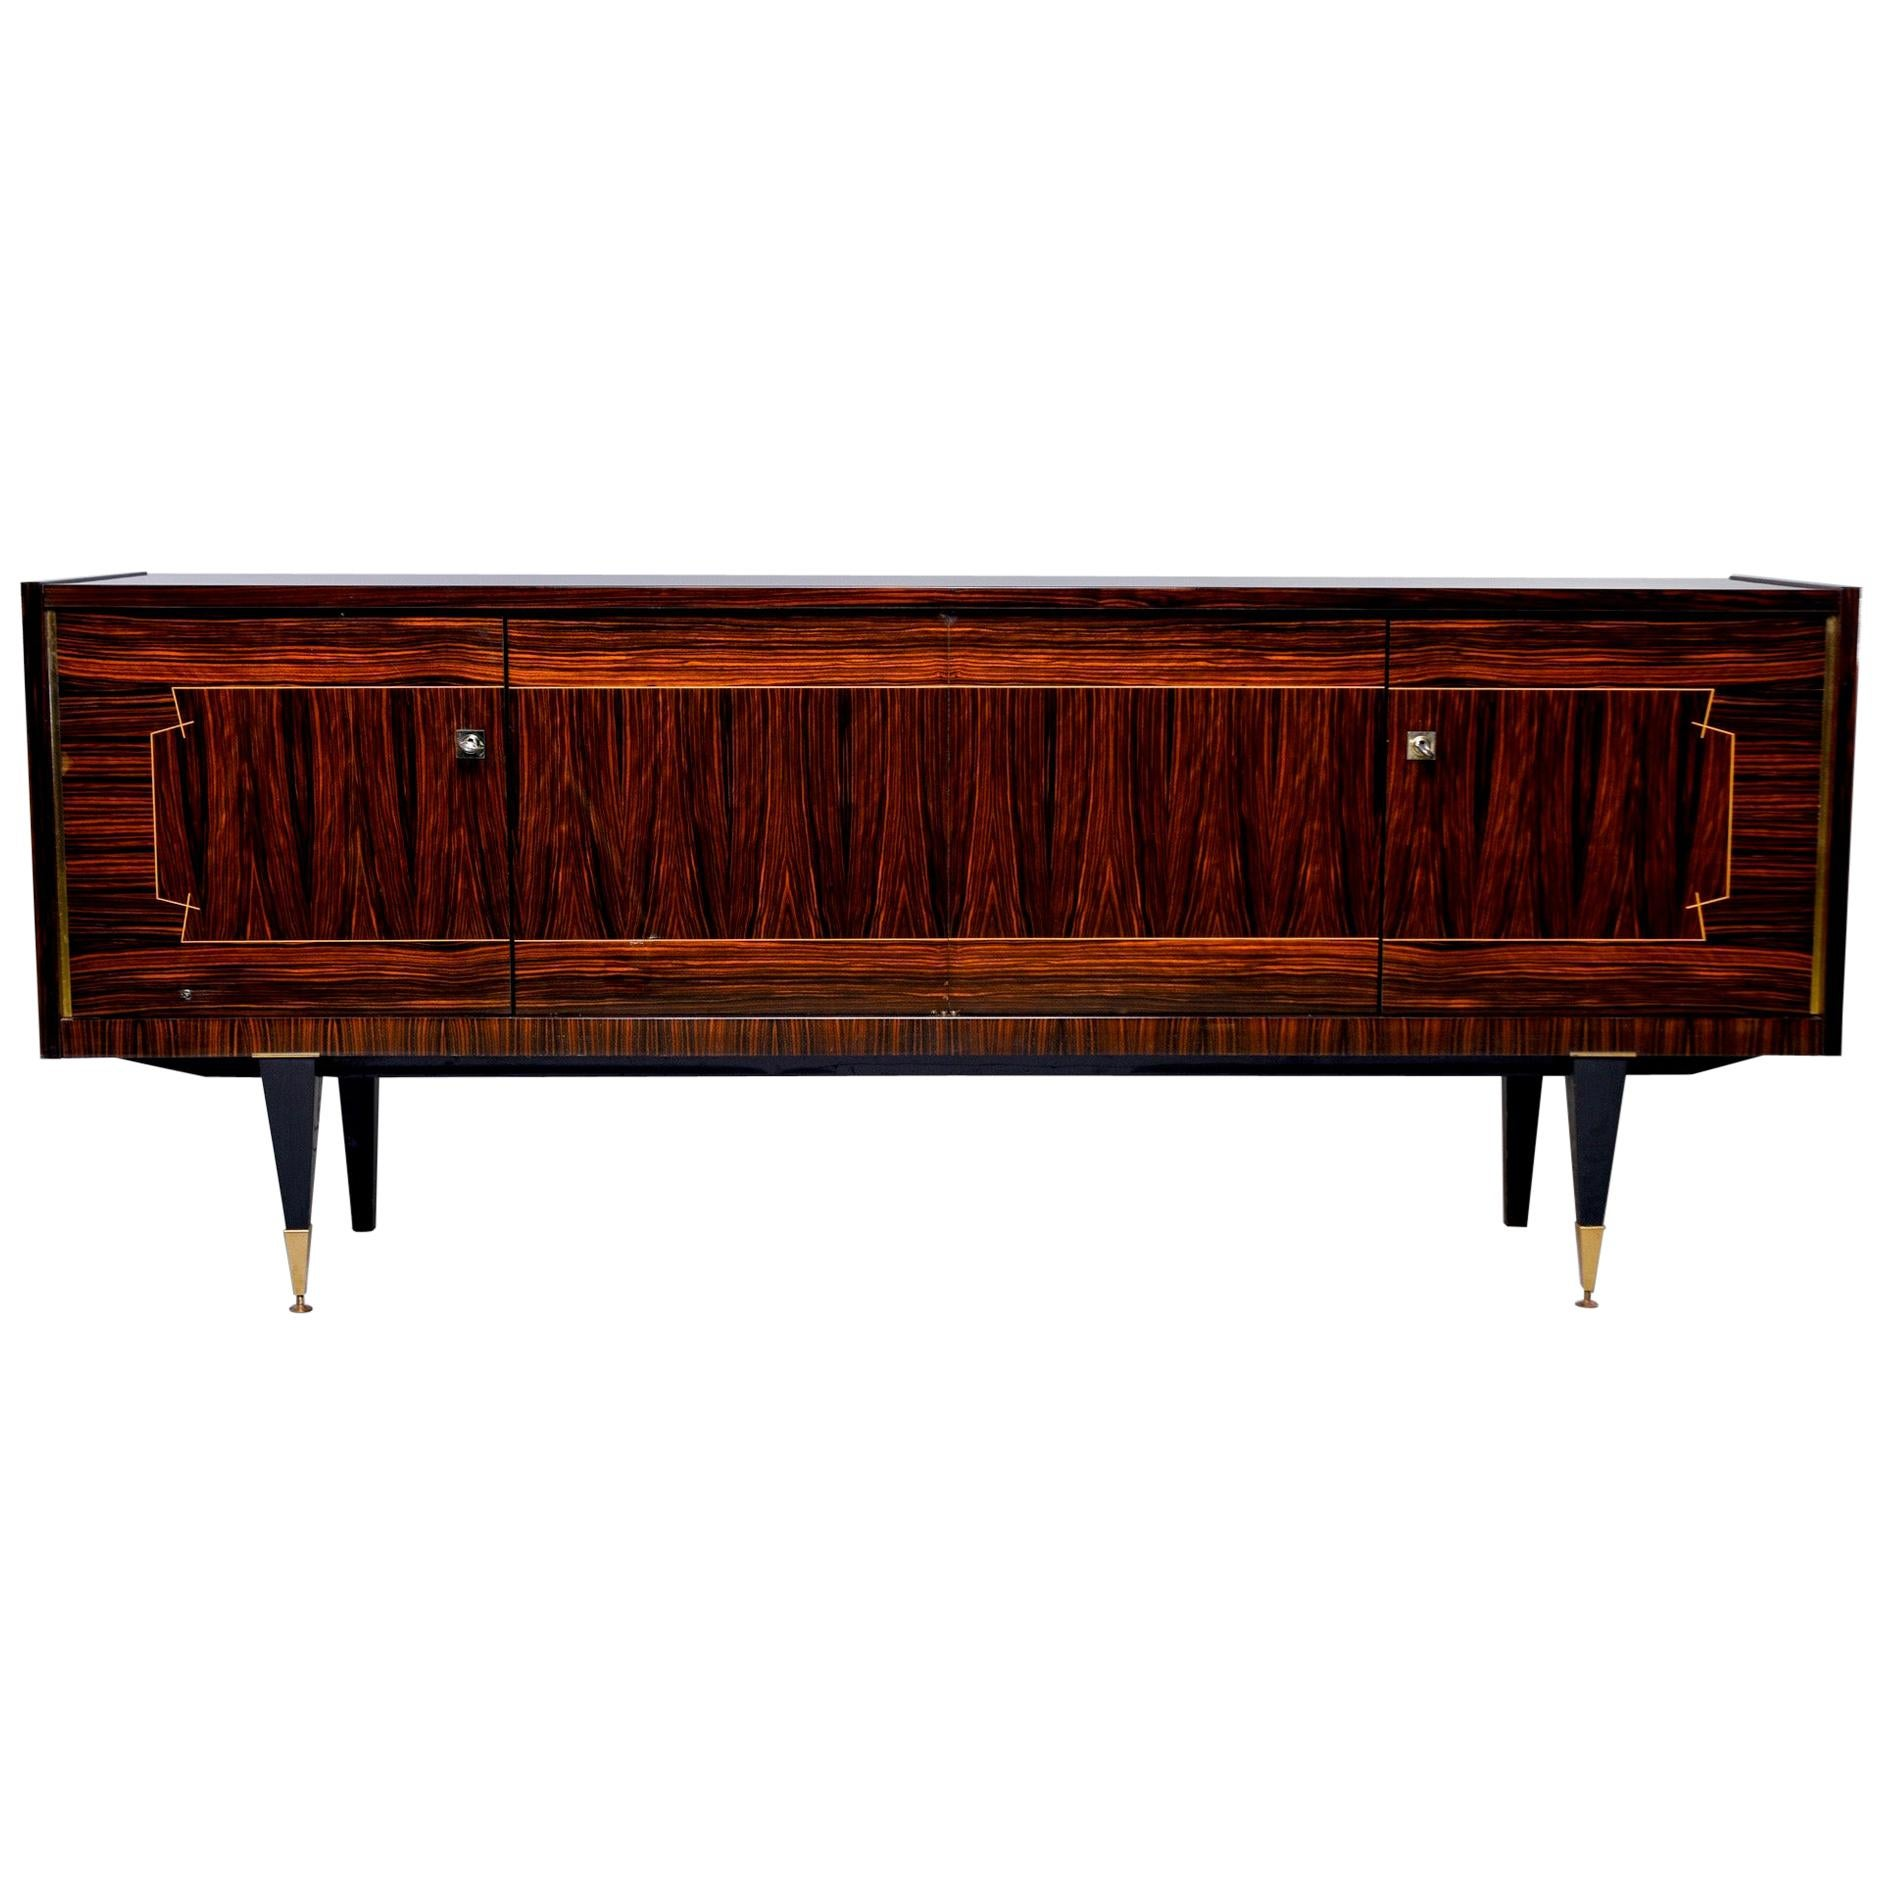 French Art Deco Macassar Buffet or Sideboard